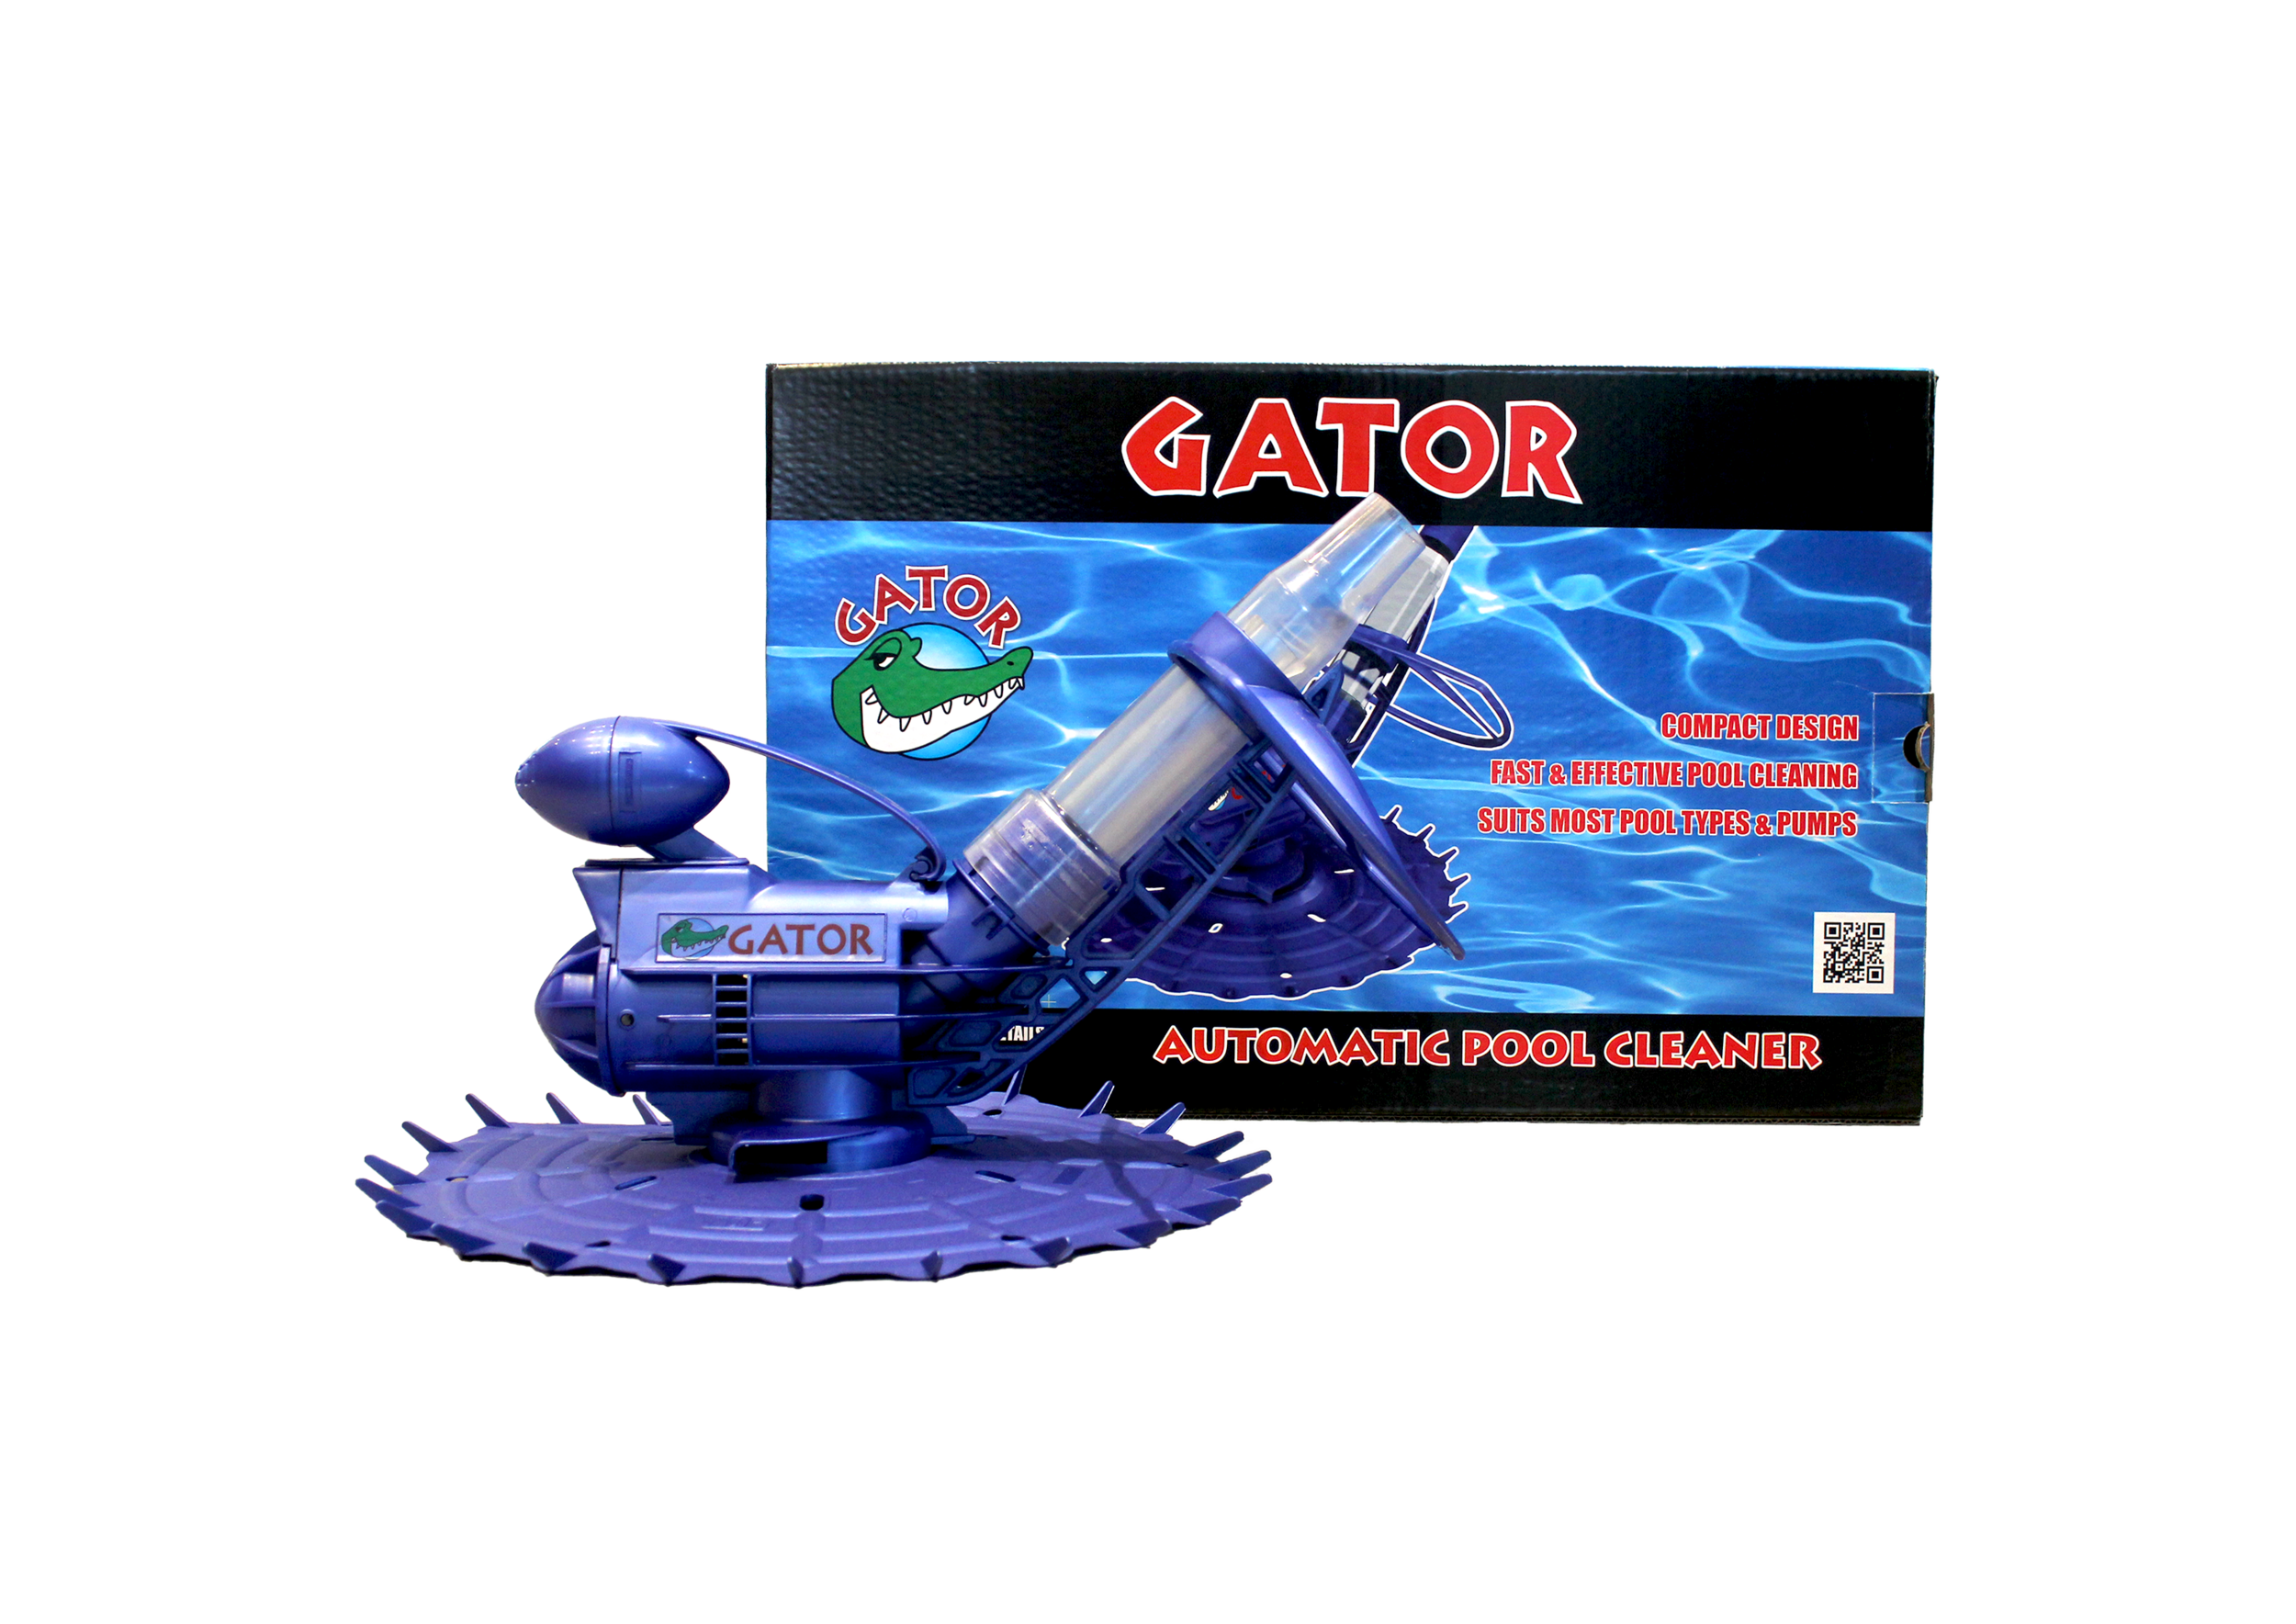 GATOR Pool Cleaner